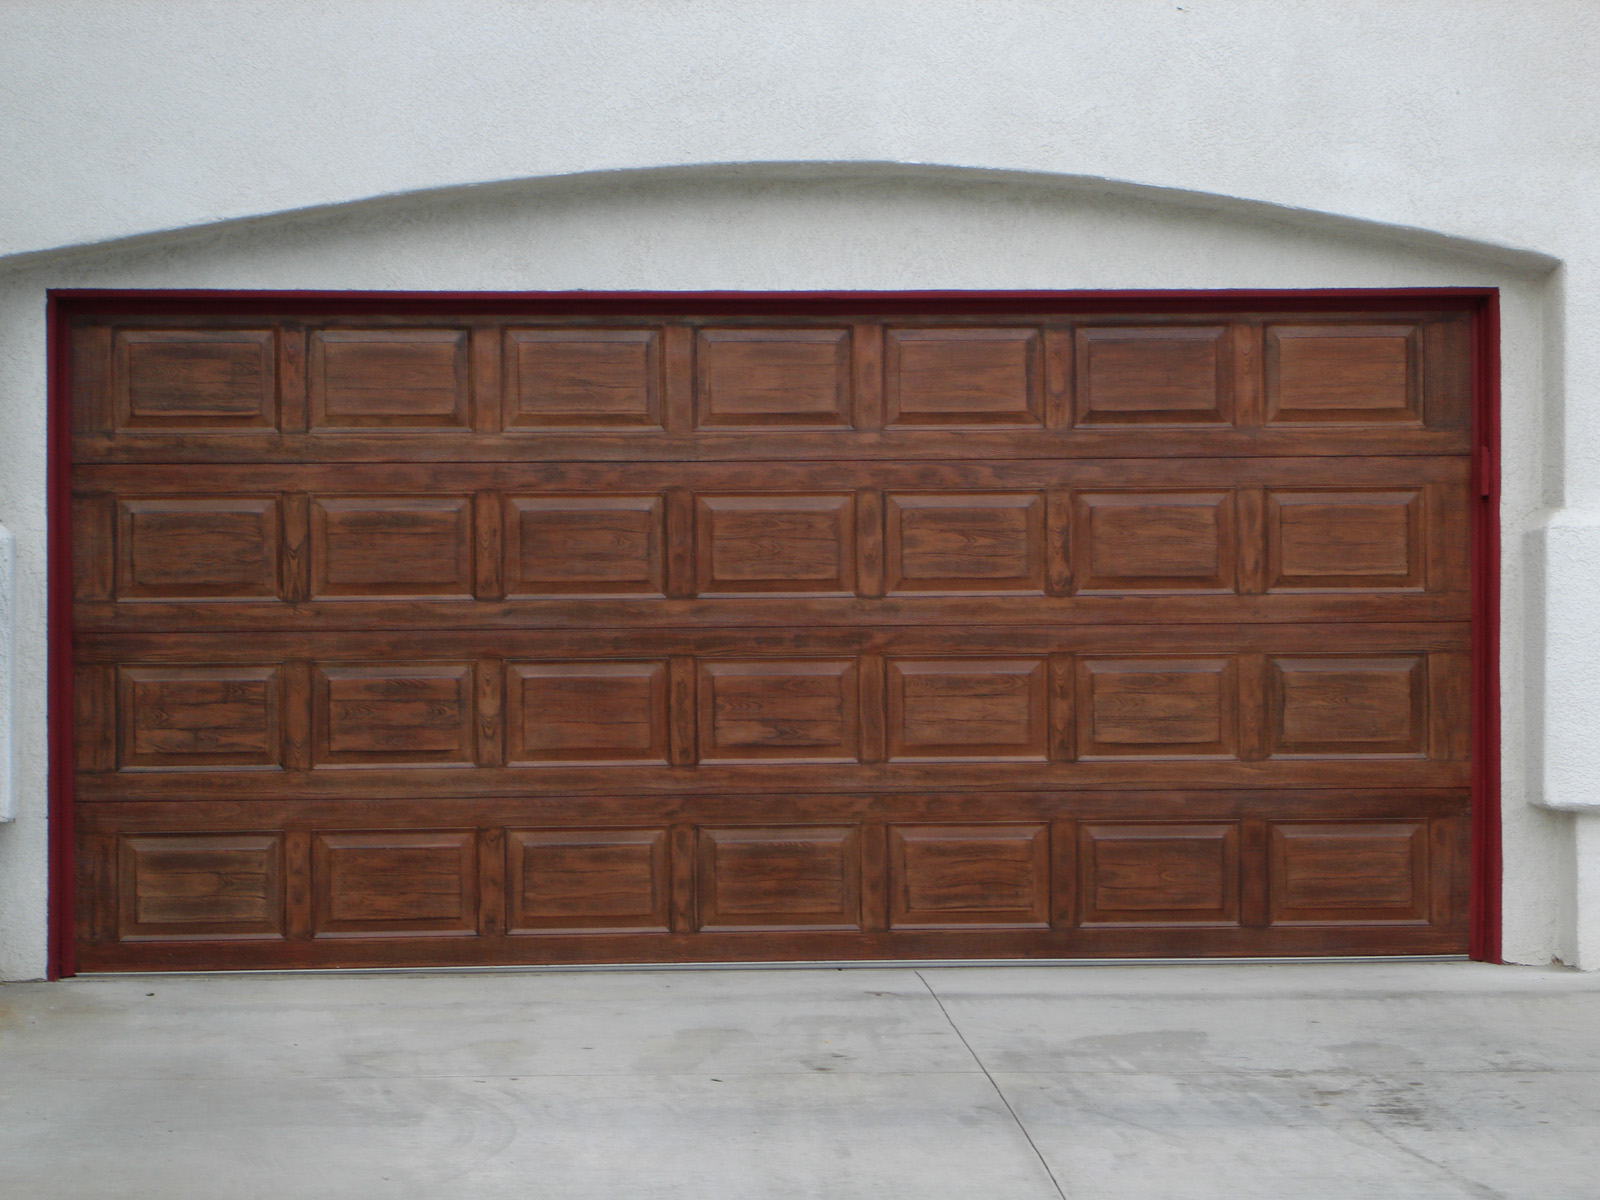 Red_mahogany_garage_door_detail.jpg